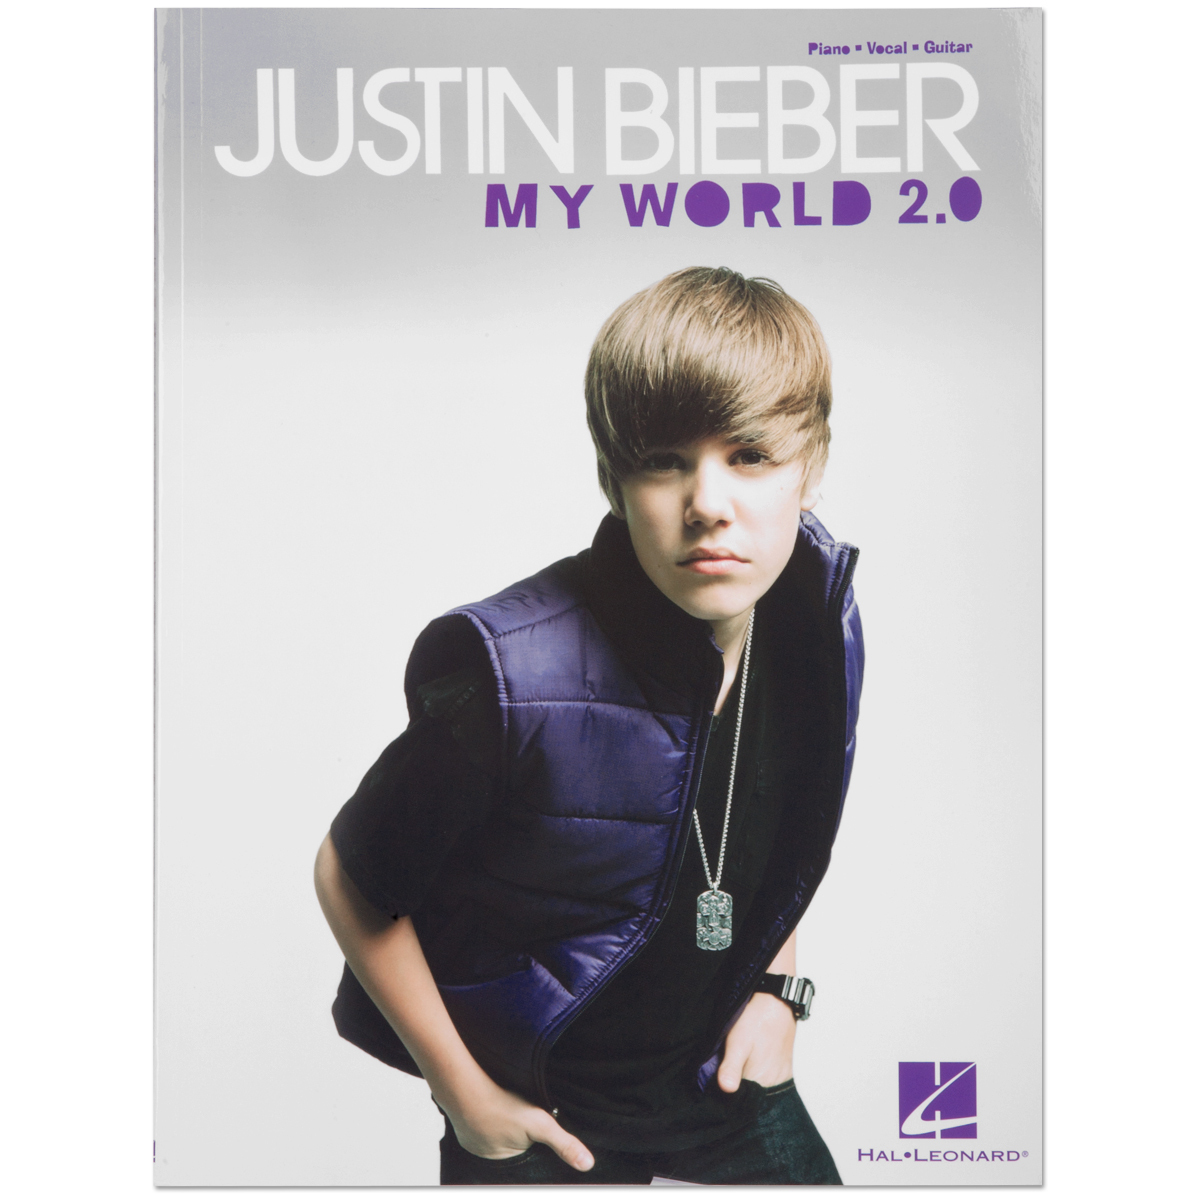 Justin Bieber my World Song List Justin Bieber my World 2.0